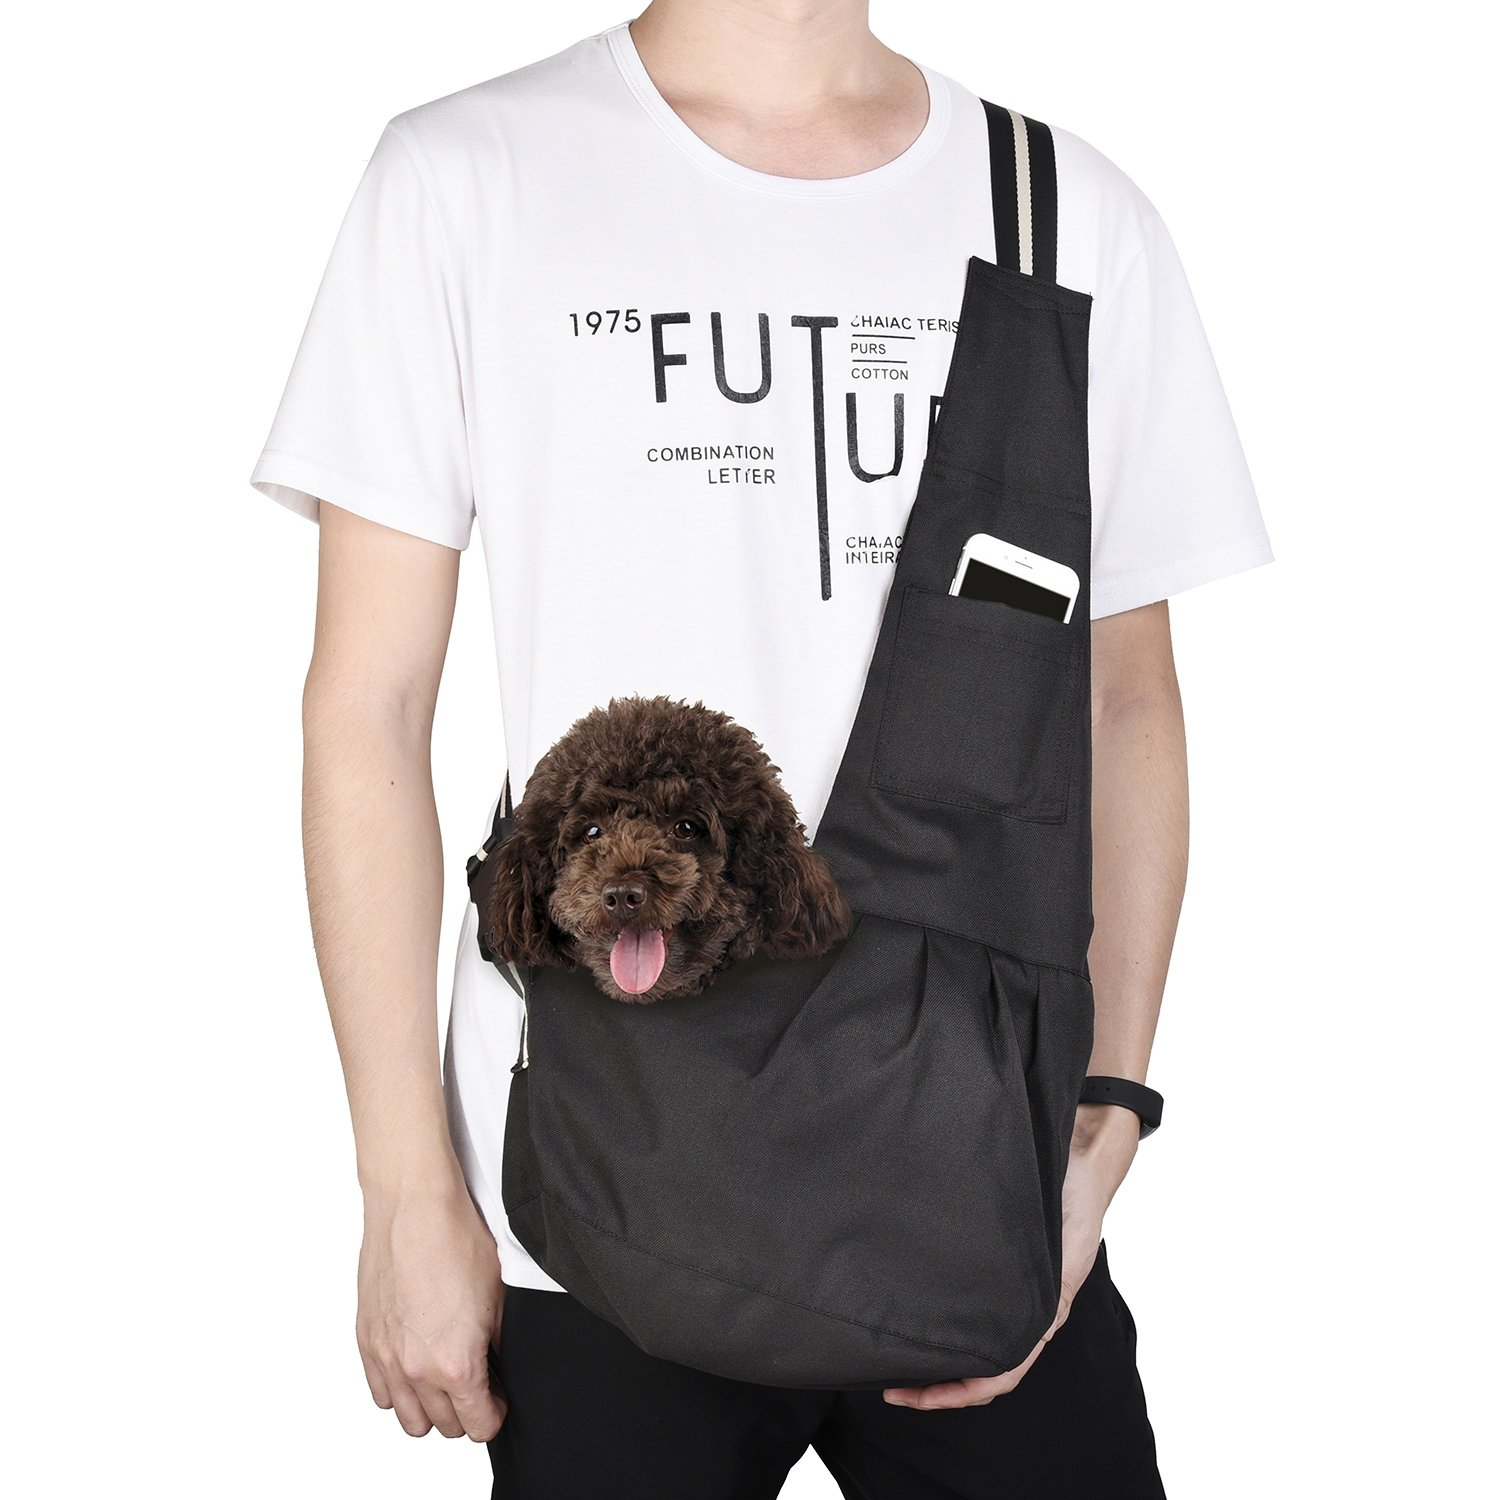 kiwitatá Hands-free Pet Sling Carrier Bag Adjustable Small Dog Cat Single Shoulder Bag Waterproof Oxford Cloth Outdoor Pet Carriers Tote for Puppy Carrier Travel Bag (S, Black)